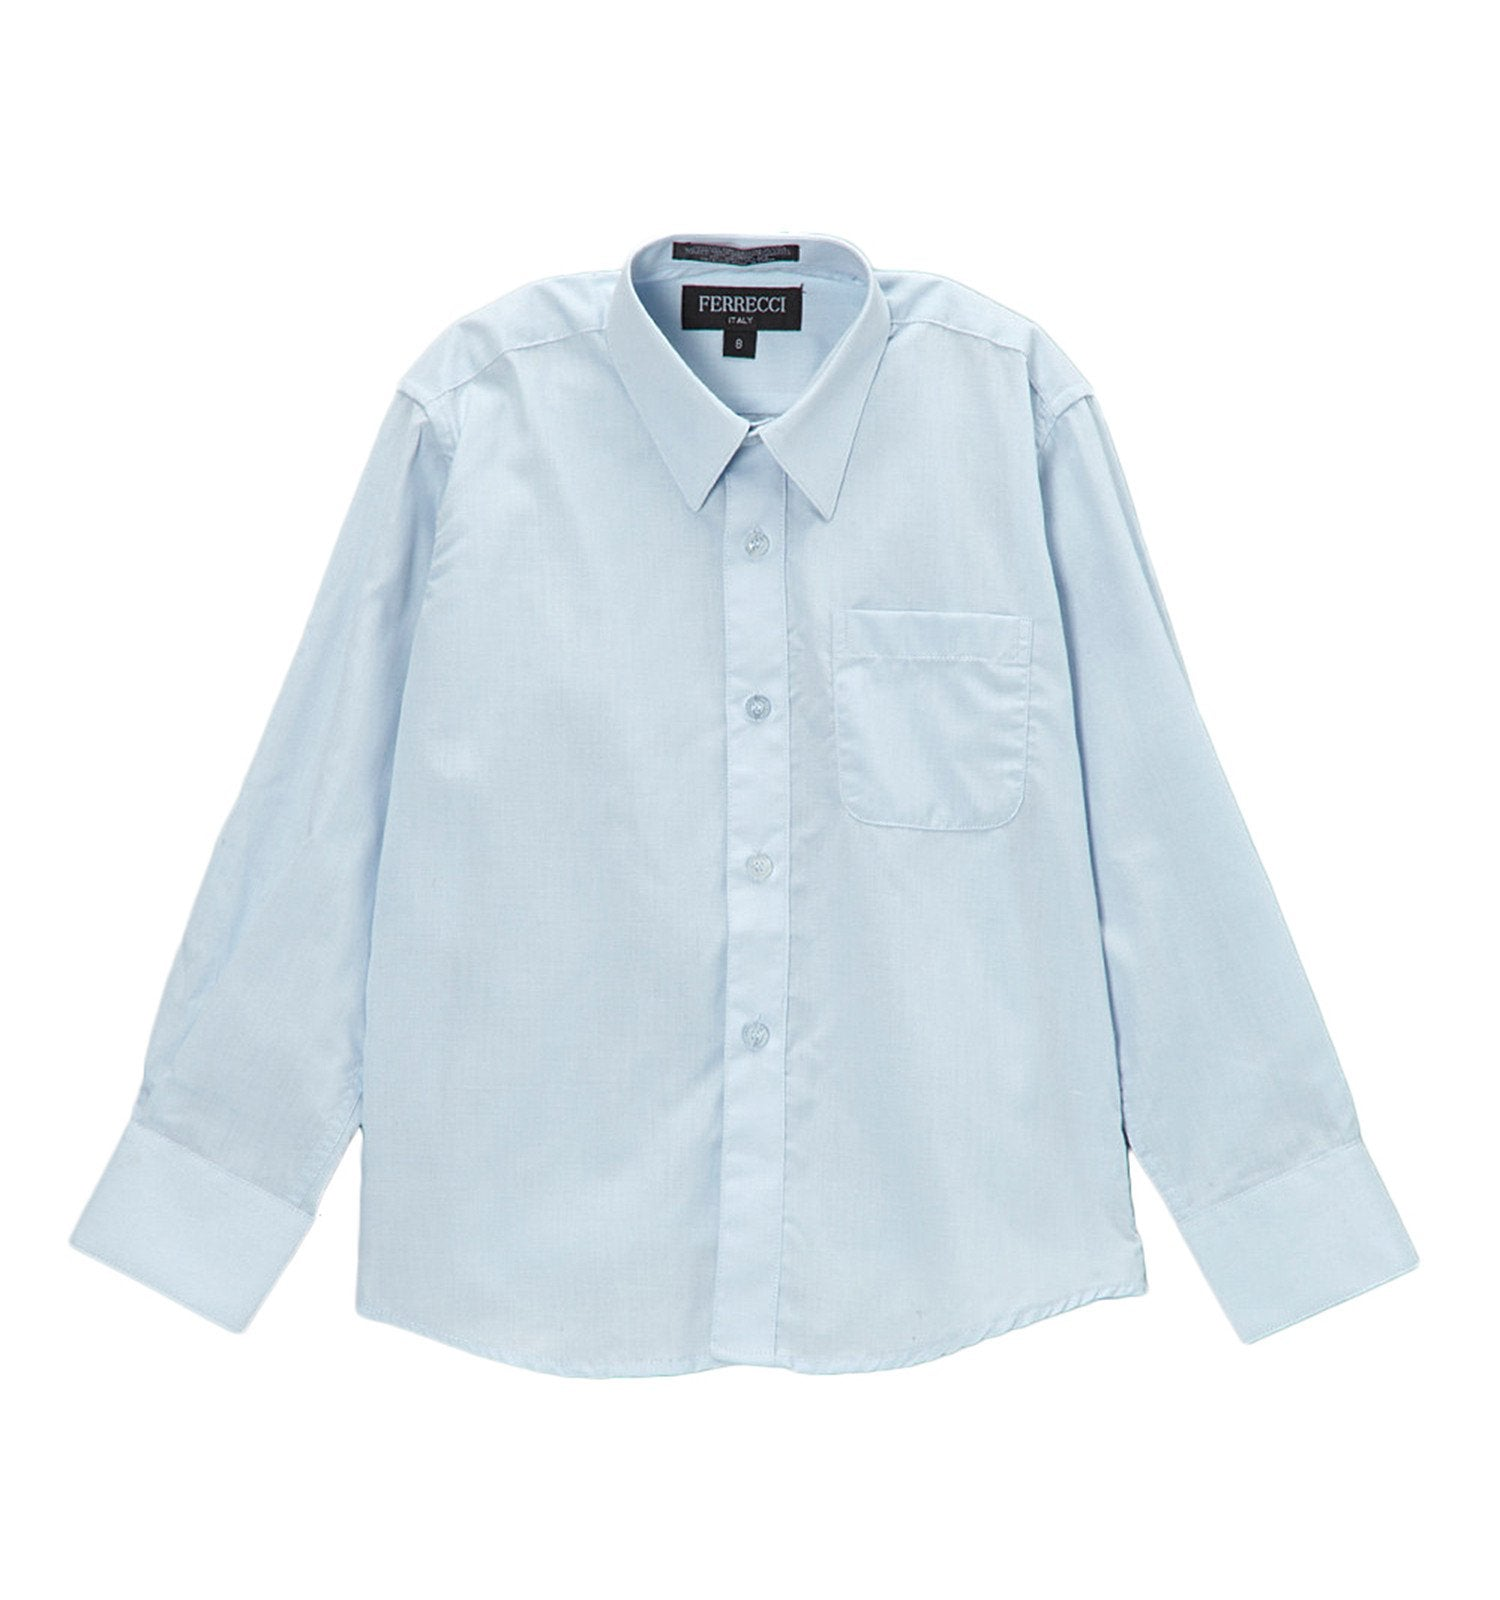 Premium Solid Cotton Blend Light Blue Dress Shirt - Giorgio's Menswear